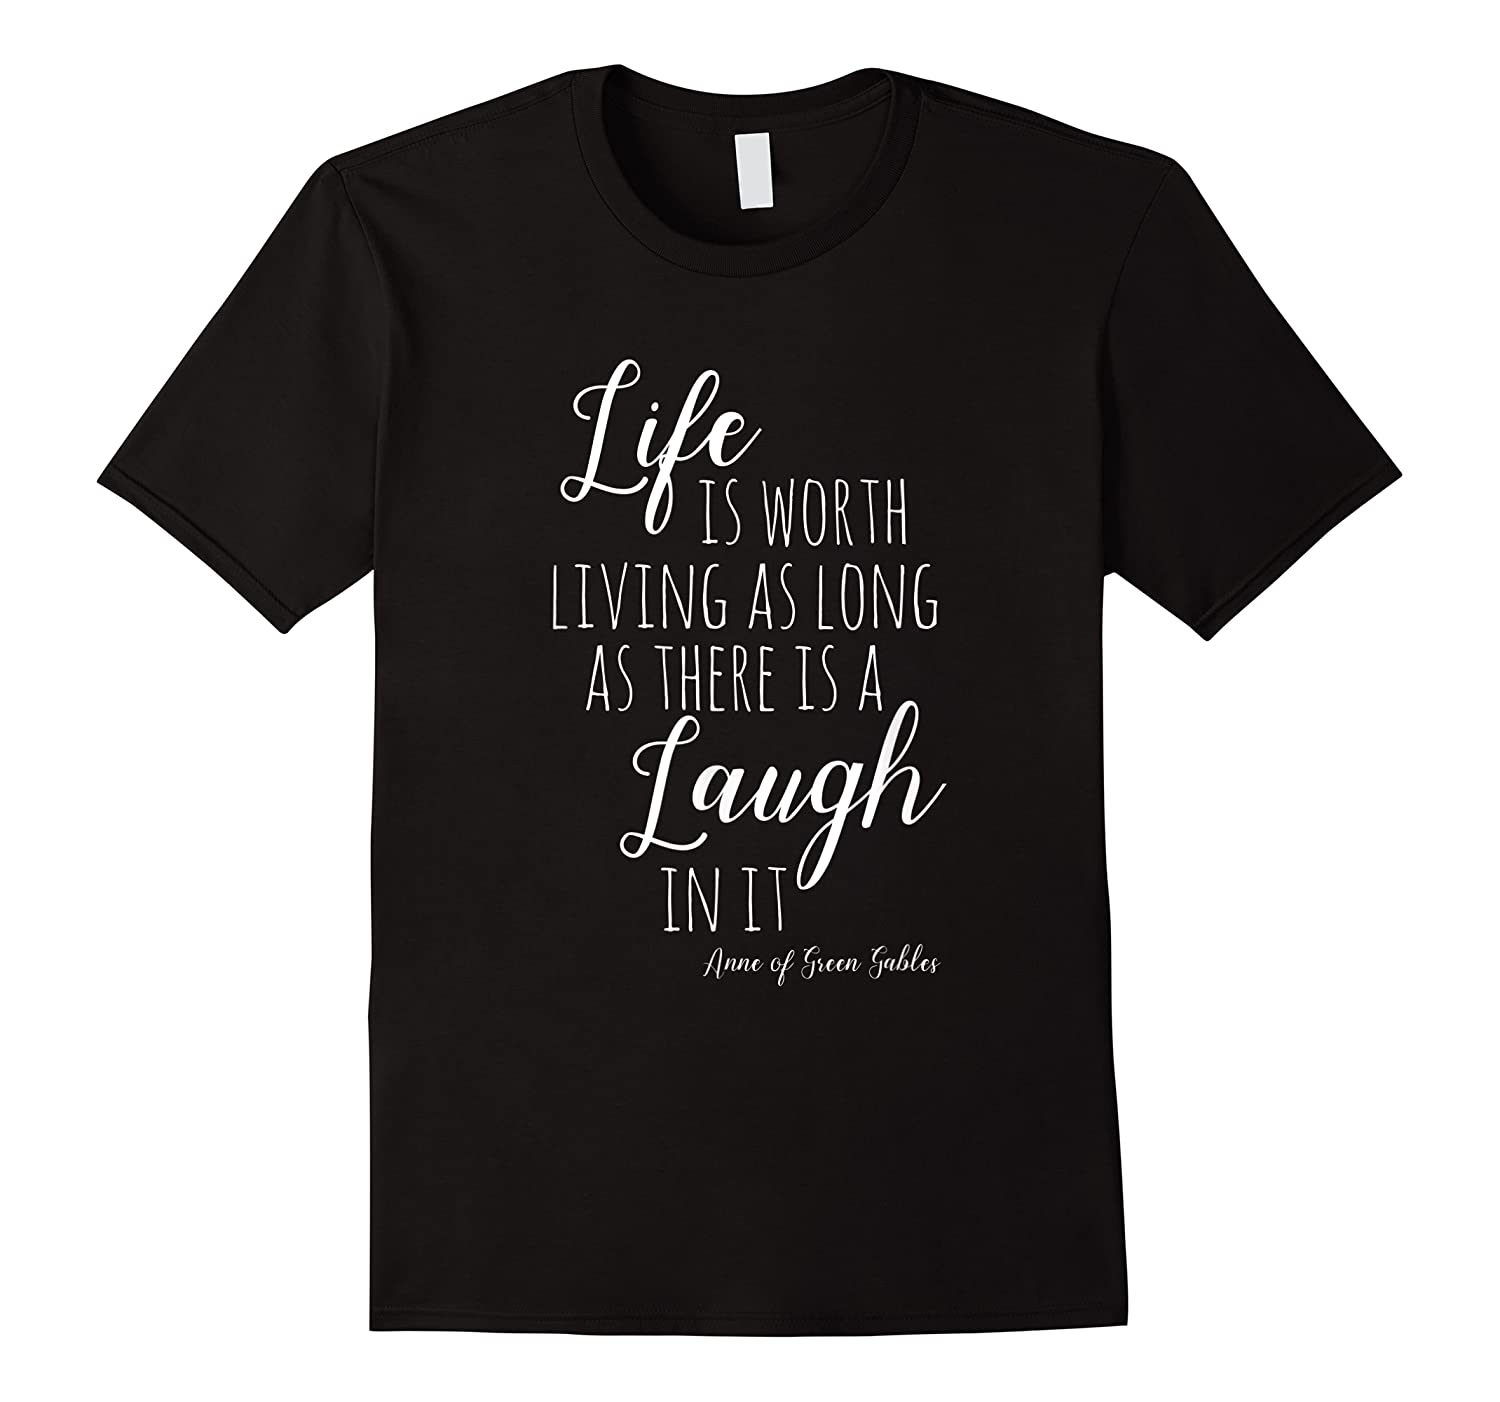 Anne With An E T-shirt, Anne Of Green Gables Quote Shirt T-shirt